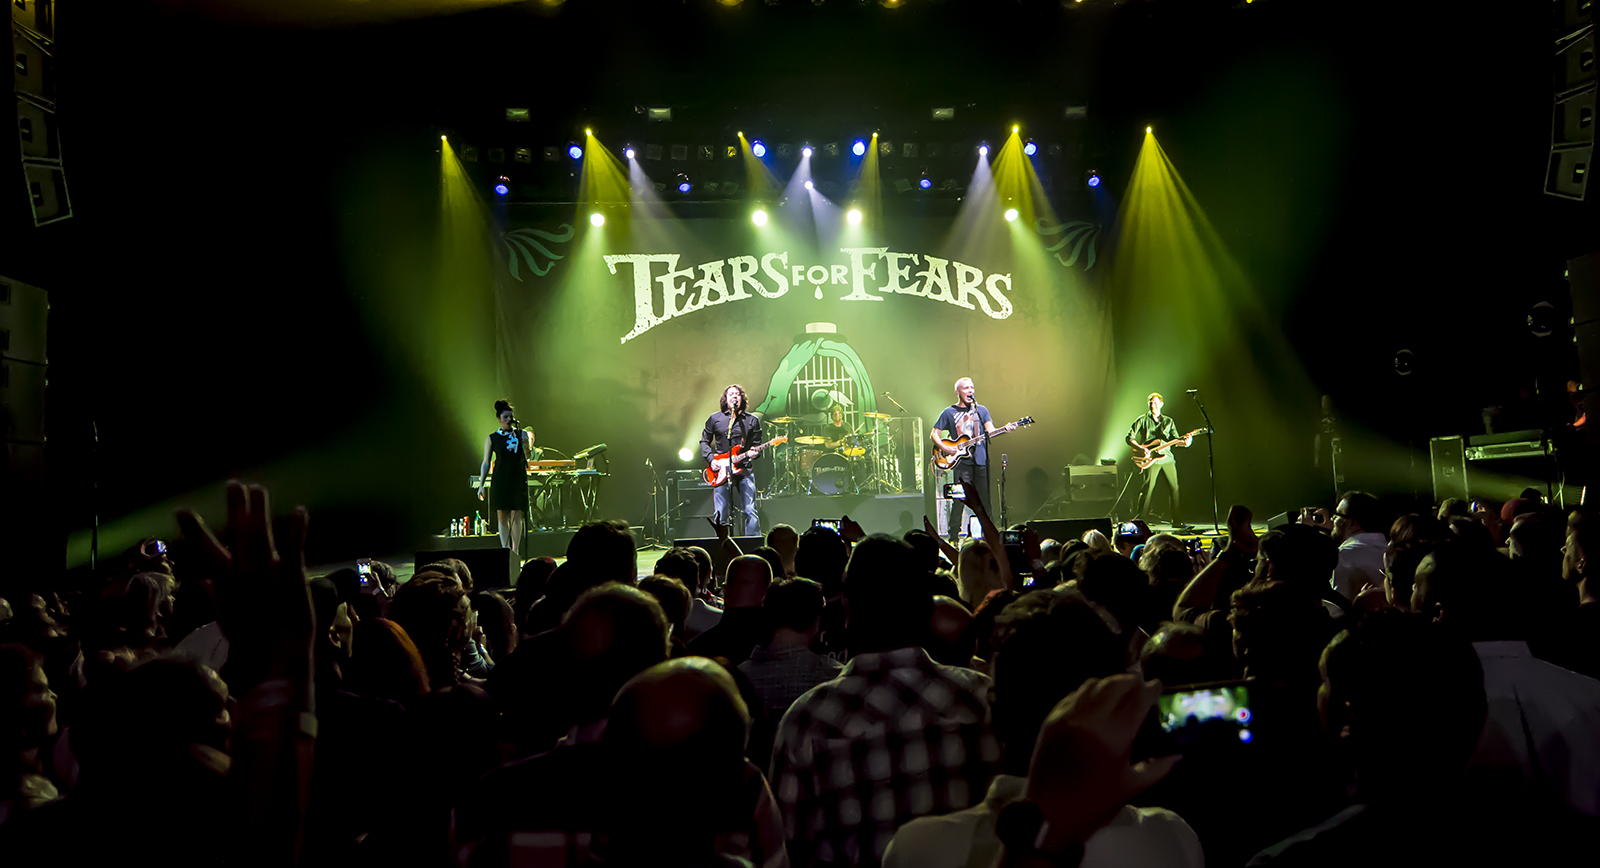 tears-for-fears-2016-tour-concert-dates-new-album-fi